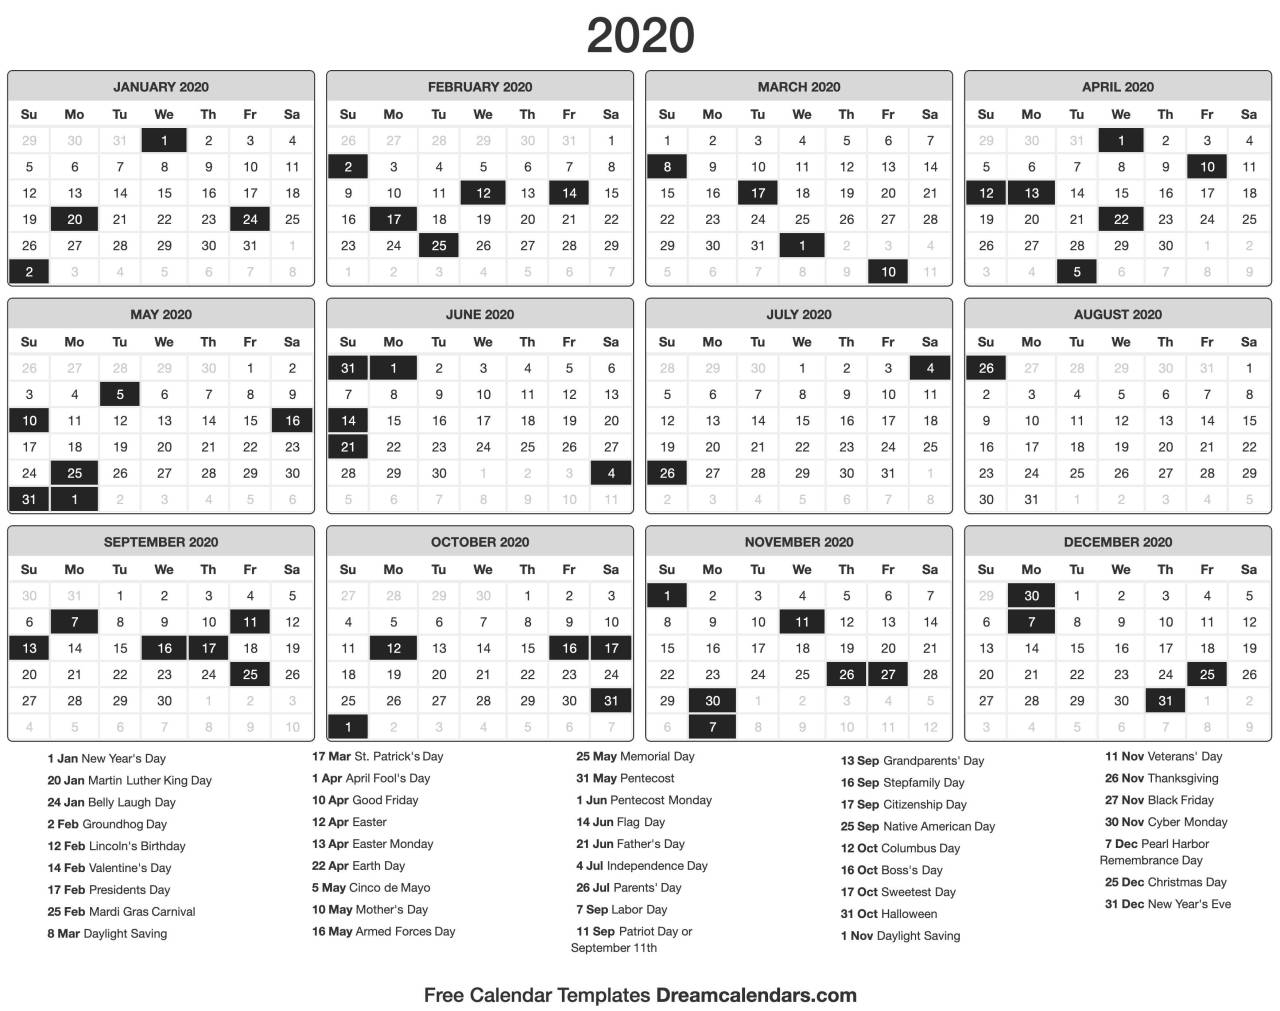 Dream Calendars: Make It 2020 Template — Printable 2020 for Roman Catholic Liturgical Calendar 2020 Excel Format